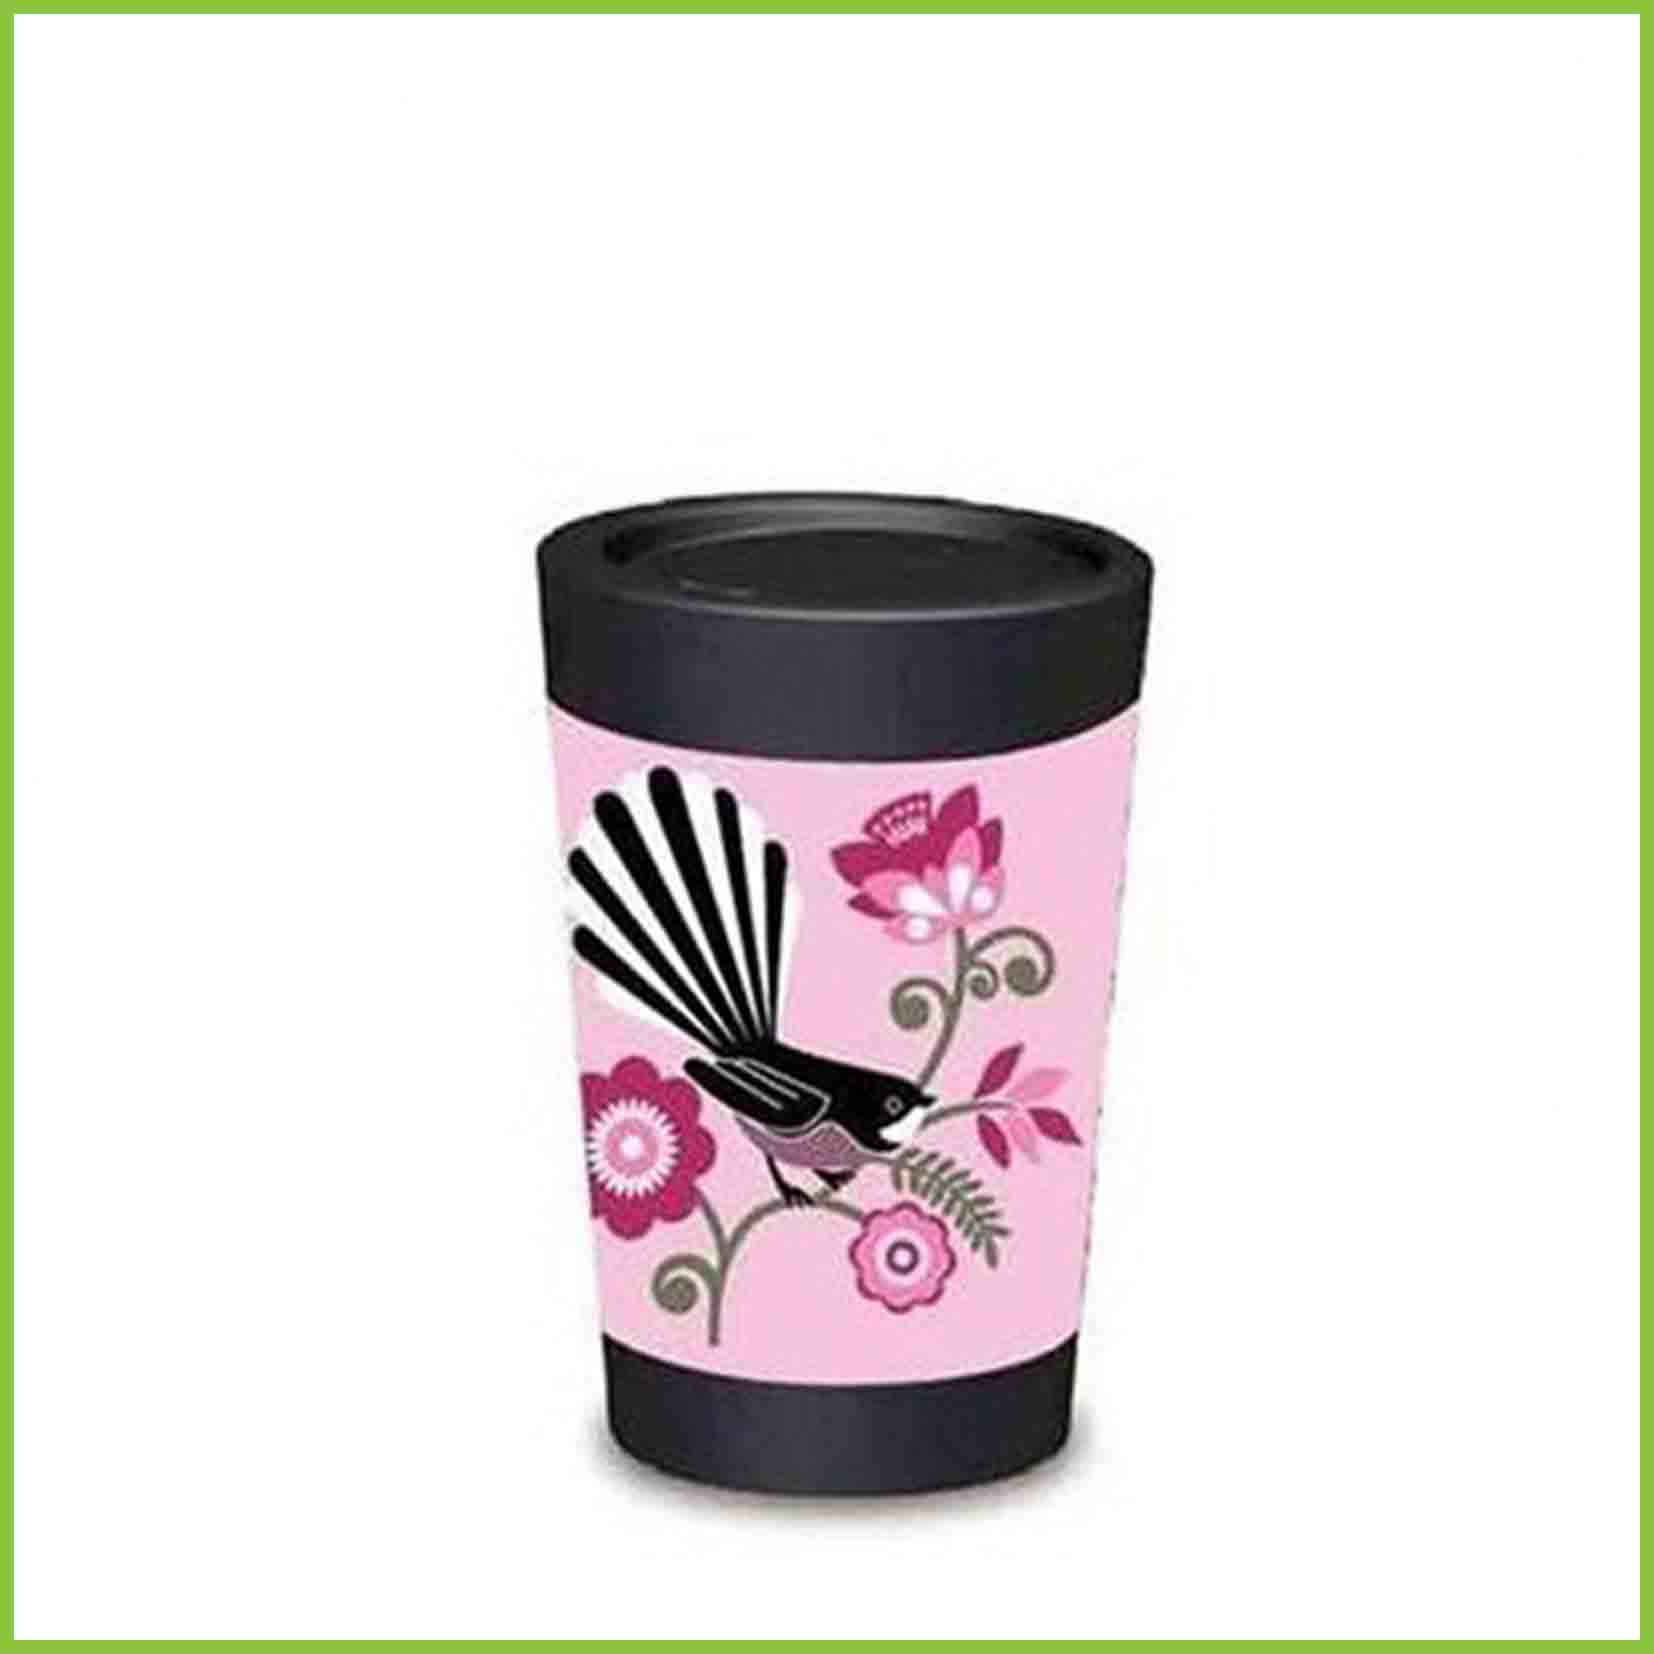 A lightweight reusable cup from CuppaCoffeeCup with a Pink Fantail design.